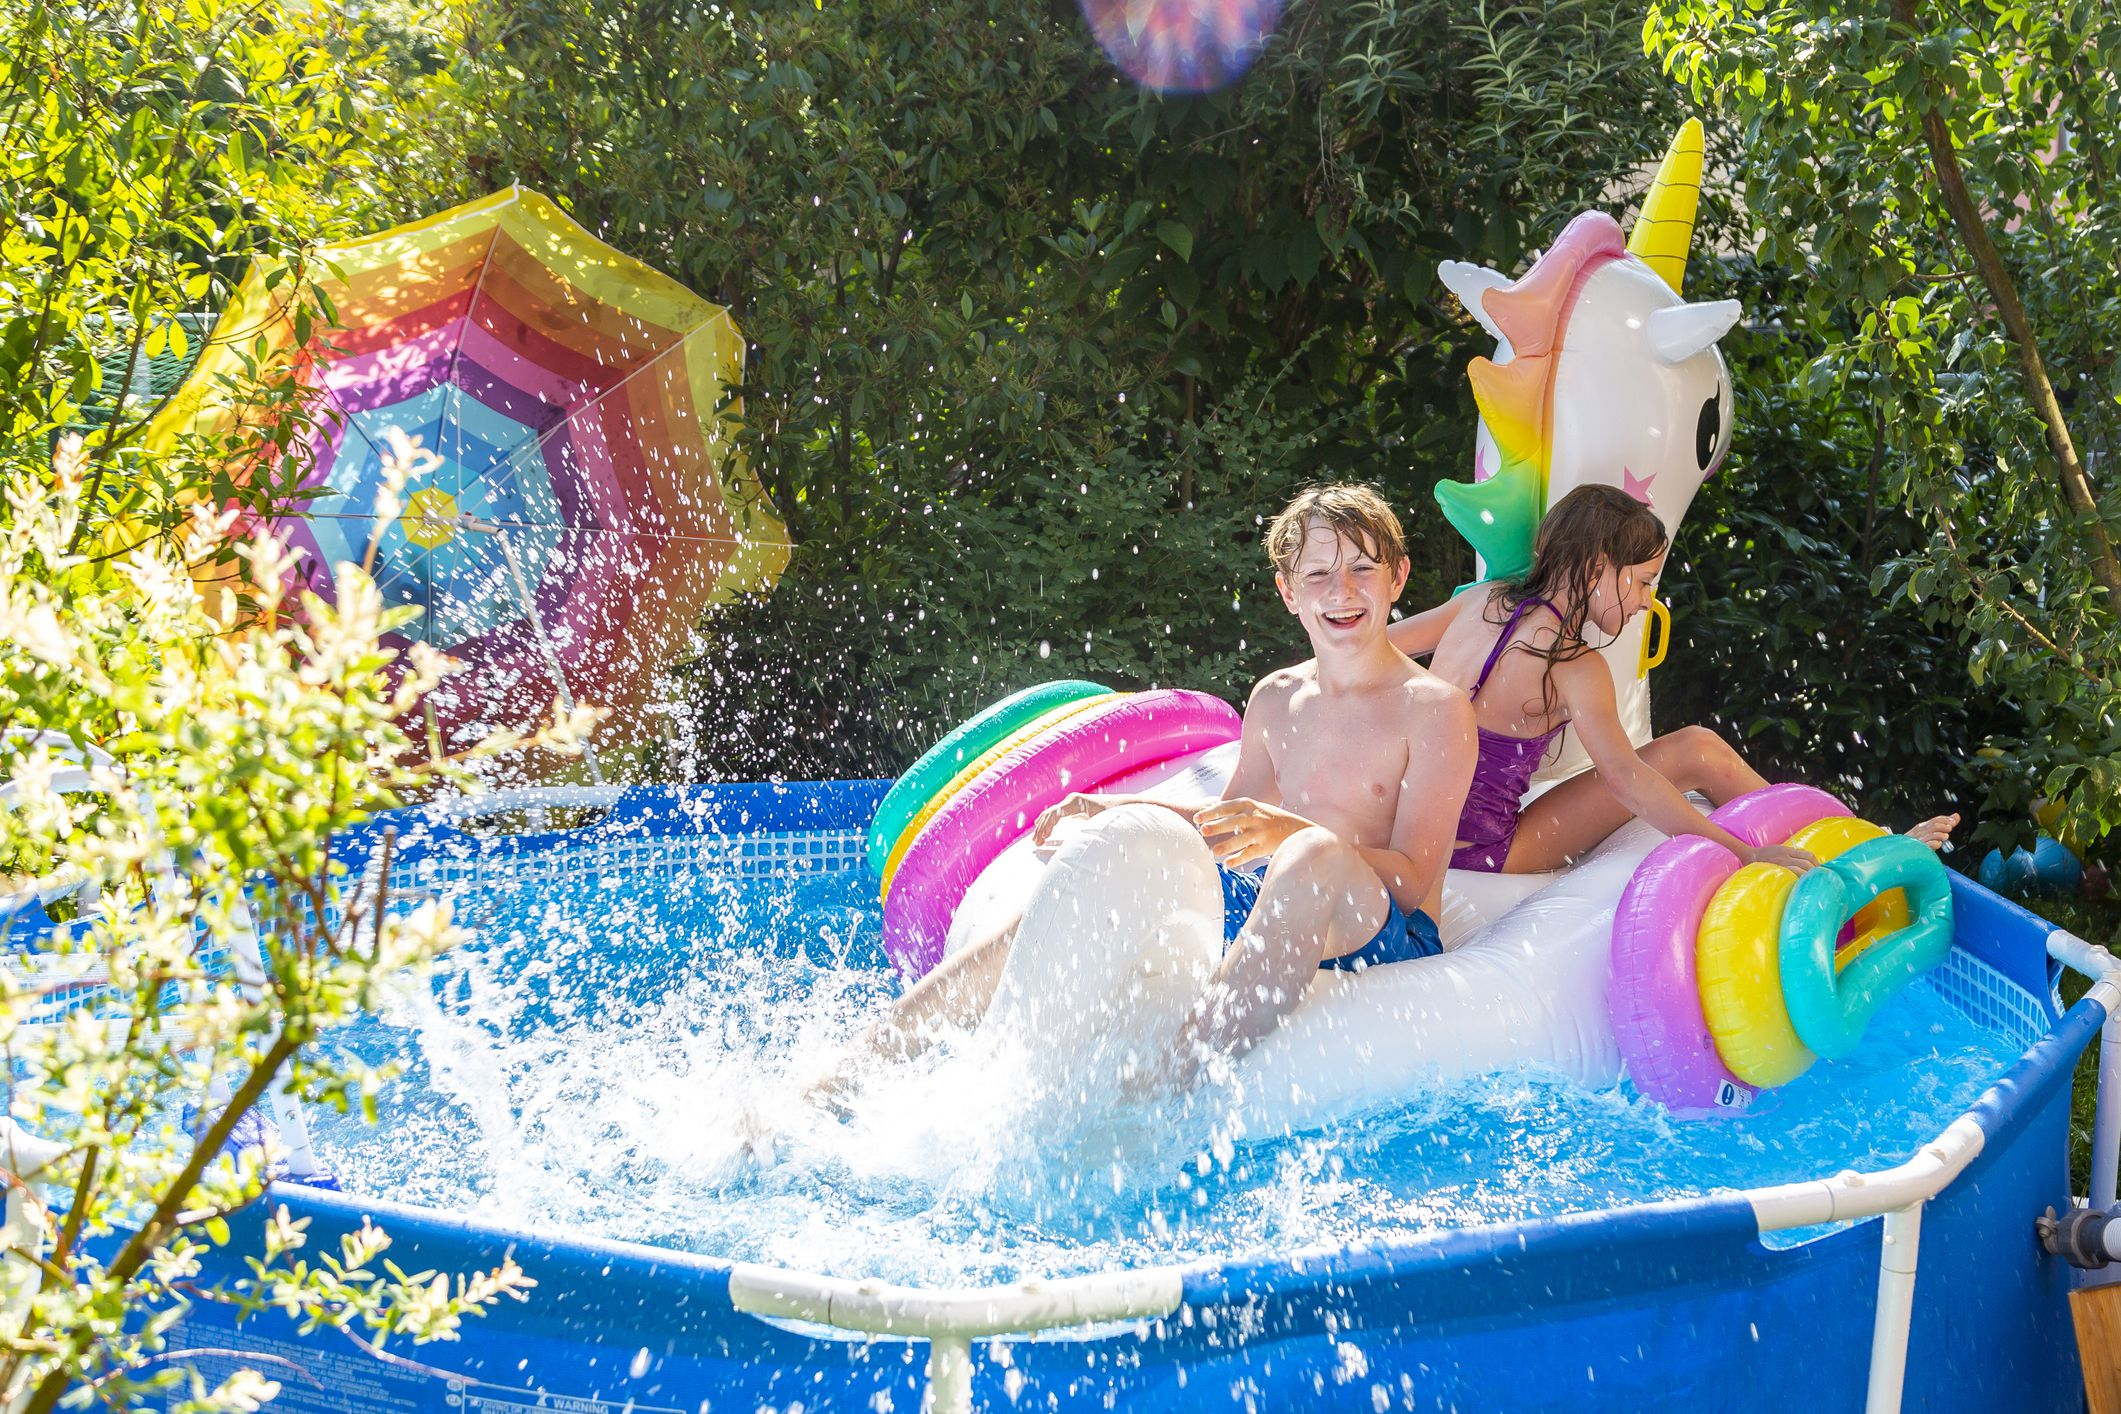 Brother and sister with oversized unicorn swim toy in paddling pool